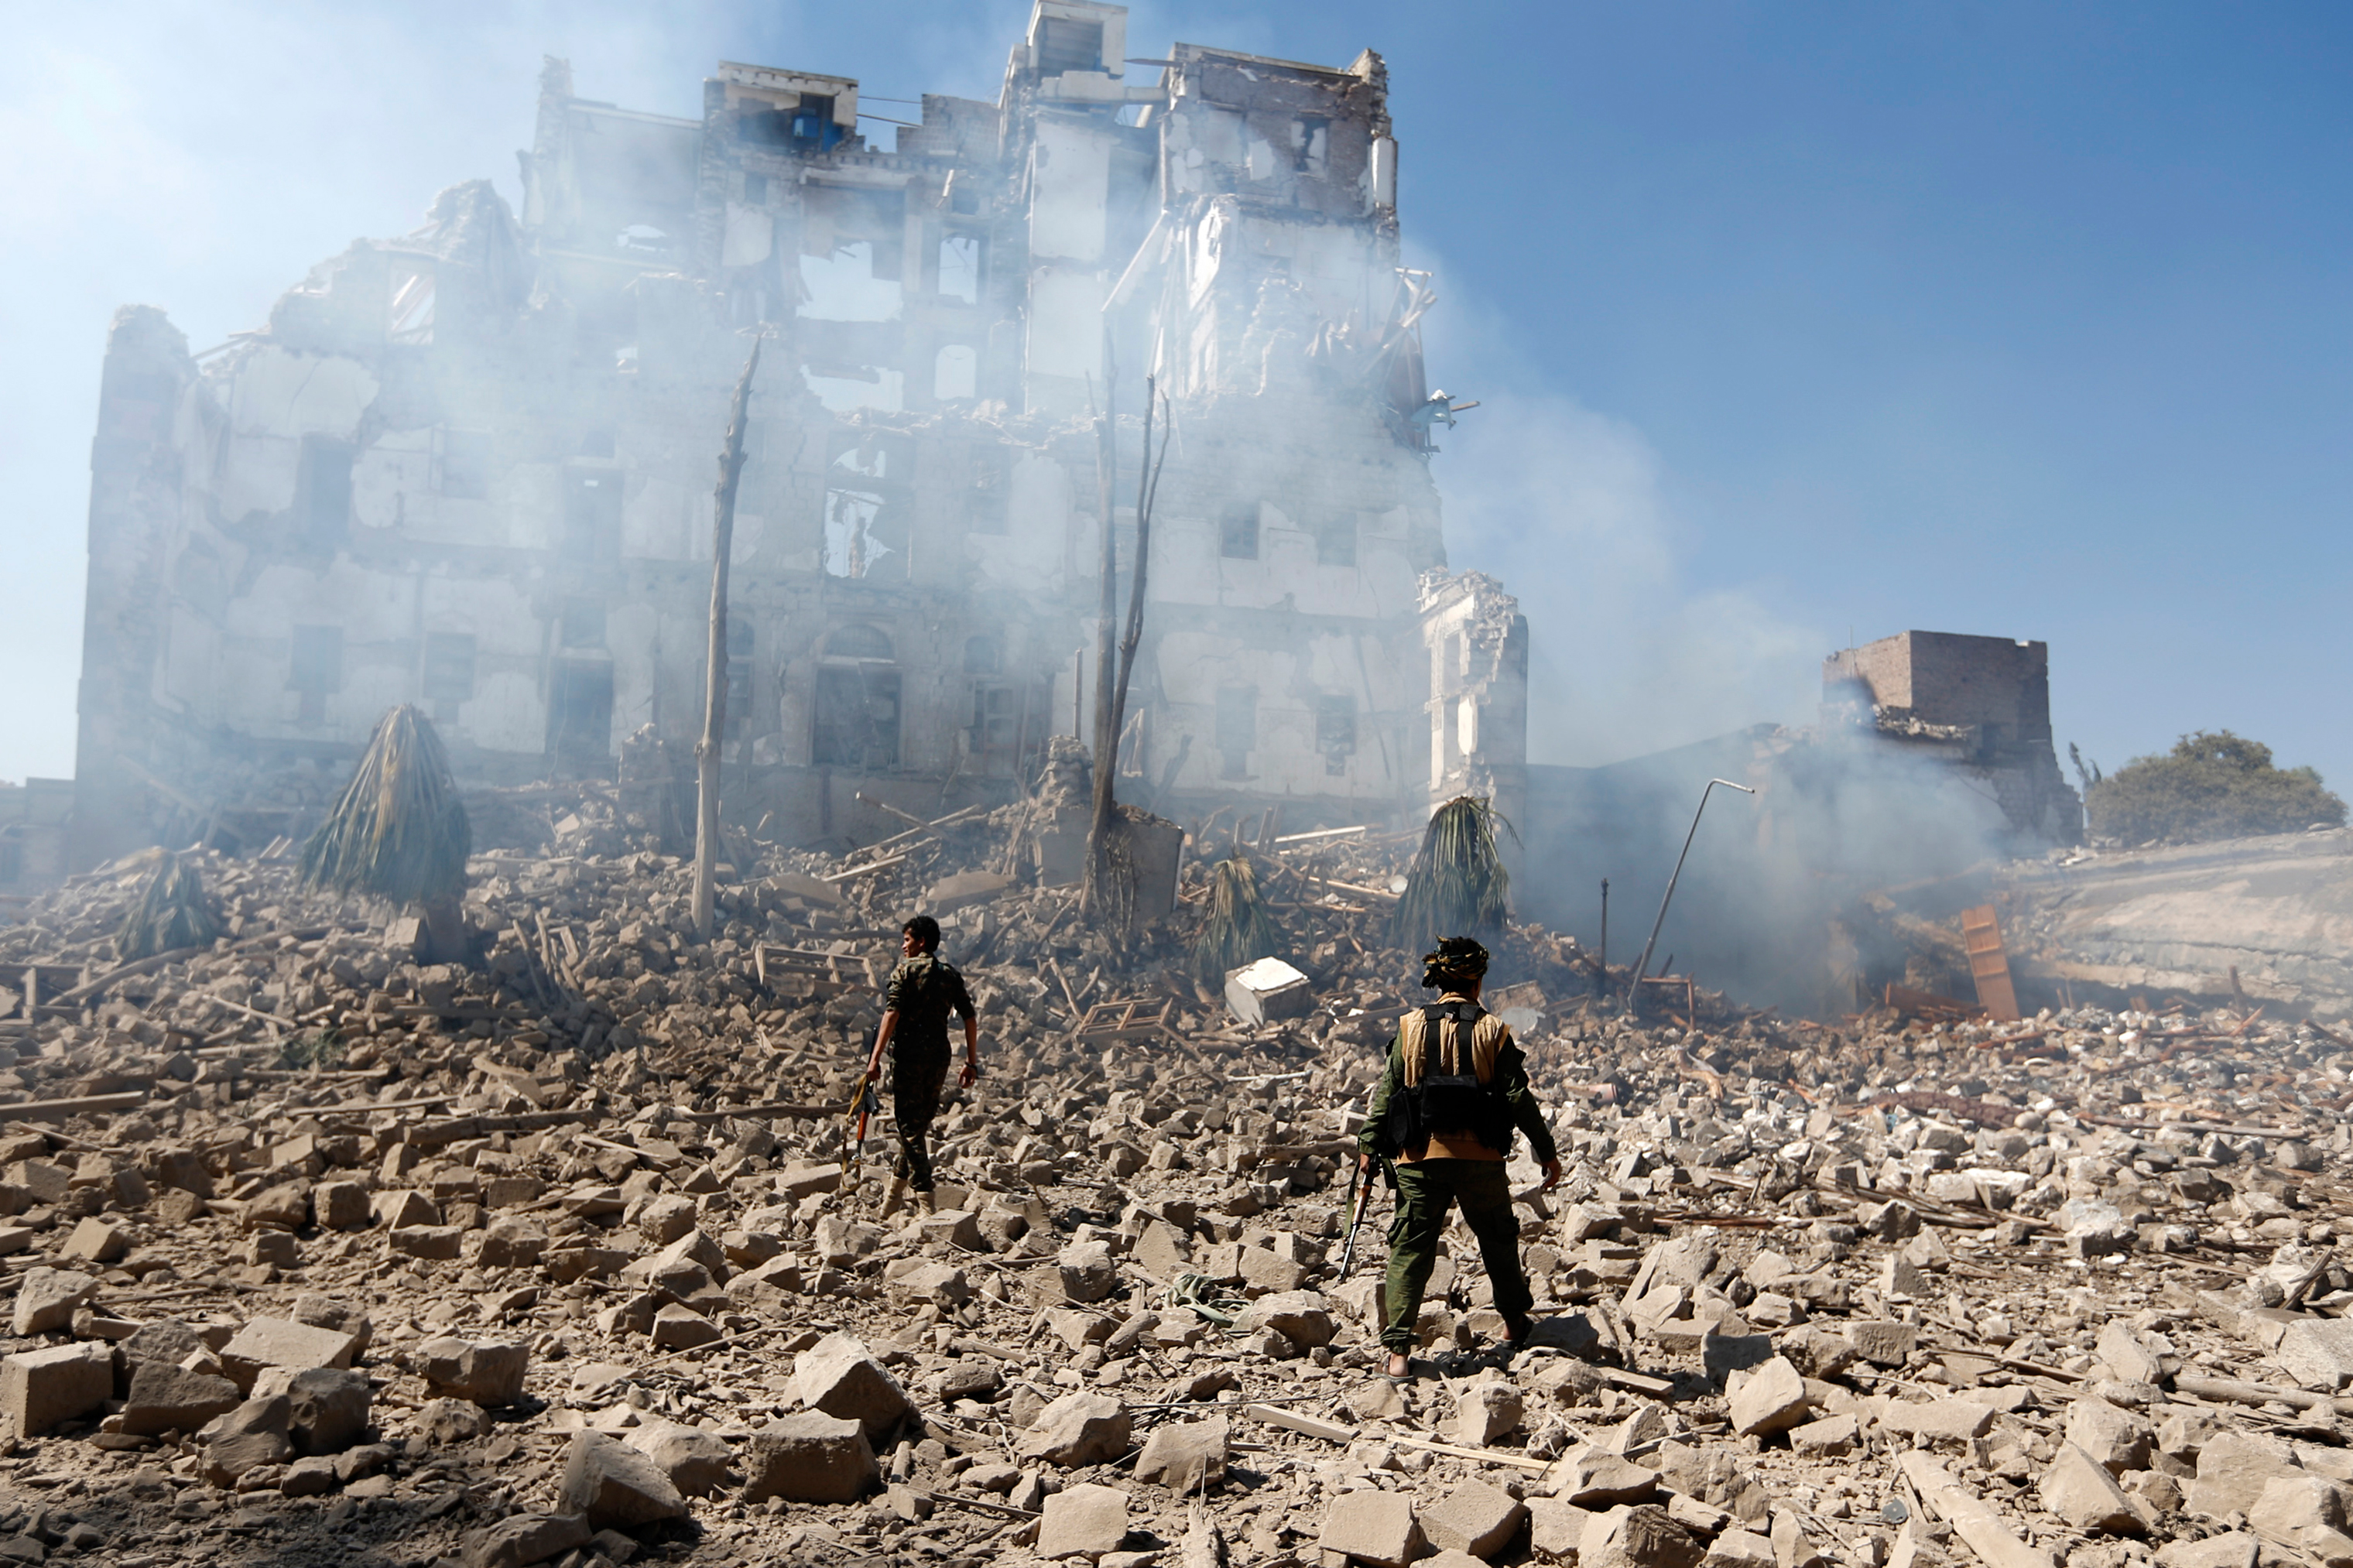 Houthi fighters inspect the site of a reported airstrike by the Saudi-led coalition that targeted Yemen's presidential palace in Sana'a on Dec. 5